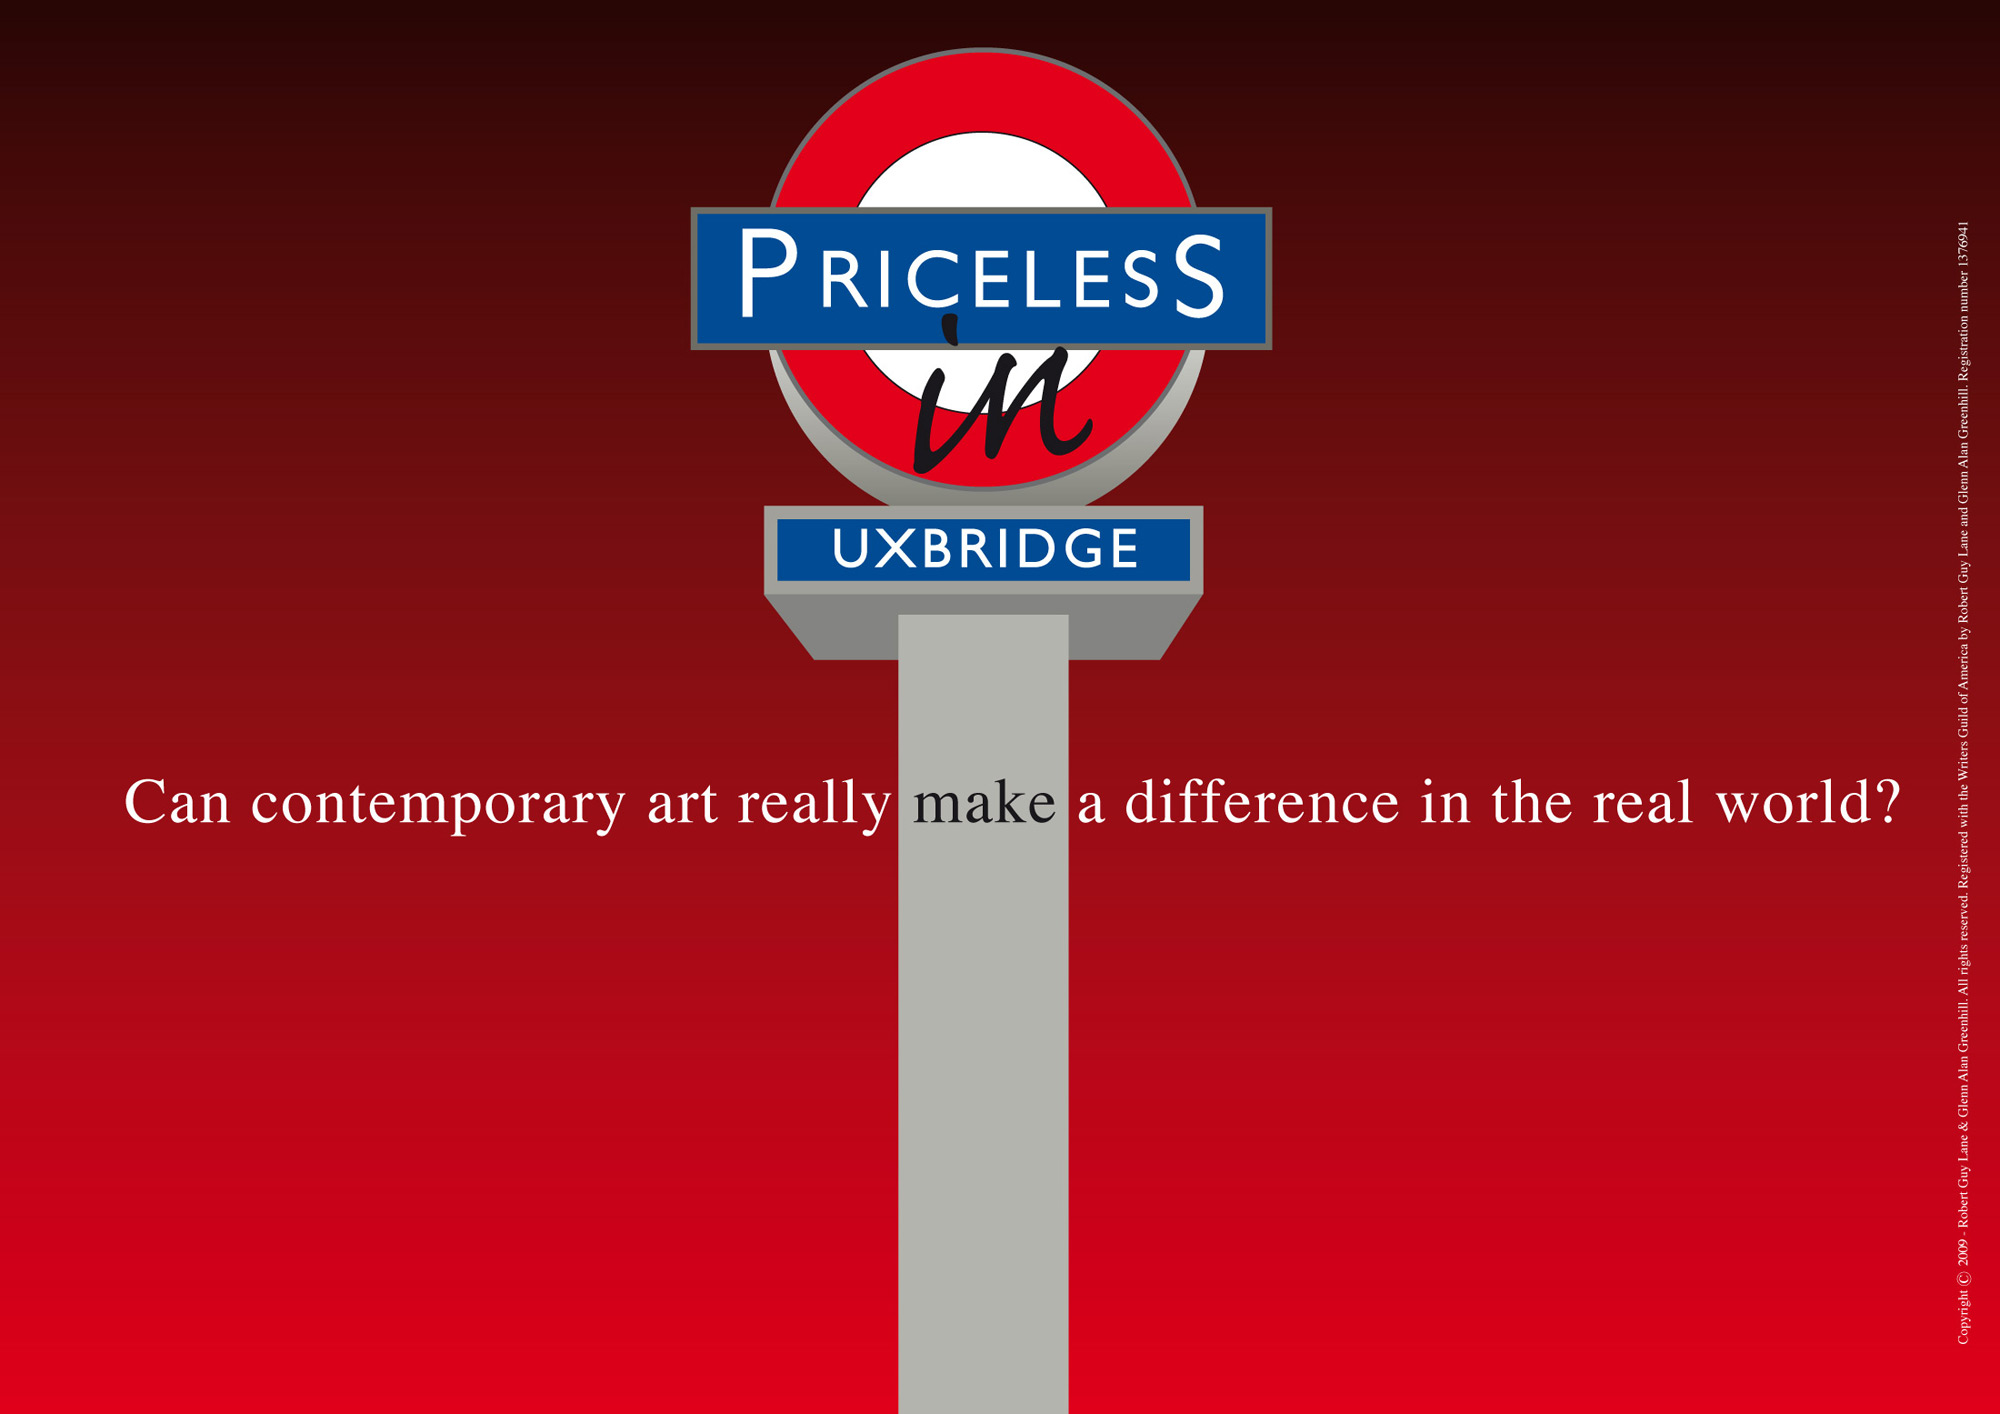 priceless_in_uxbridge_01b